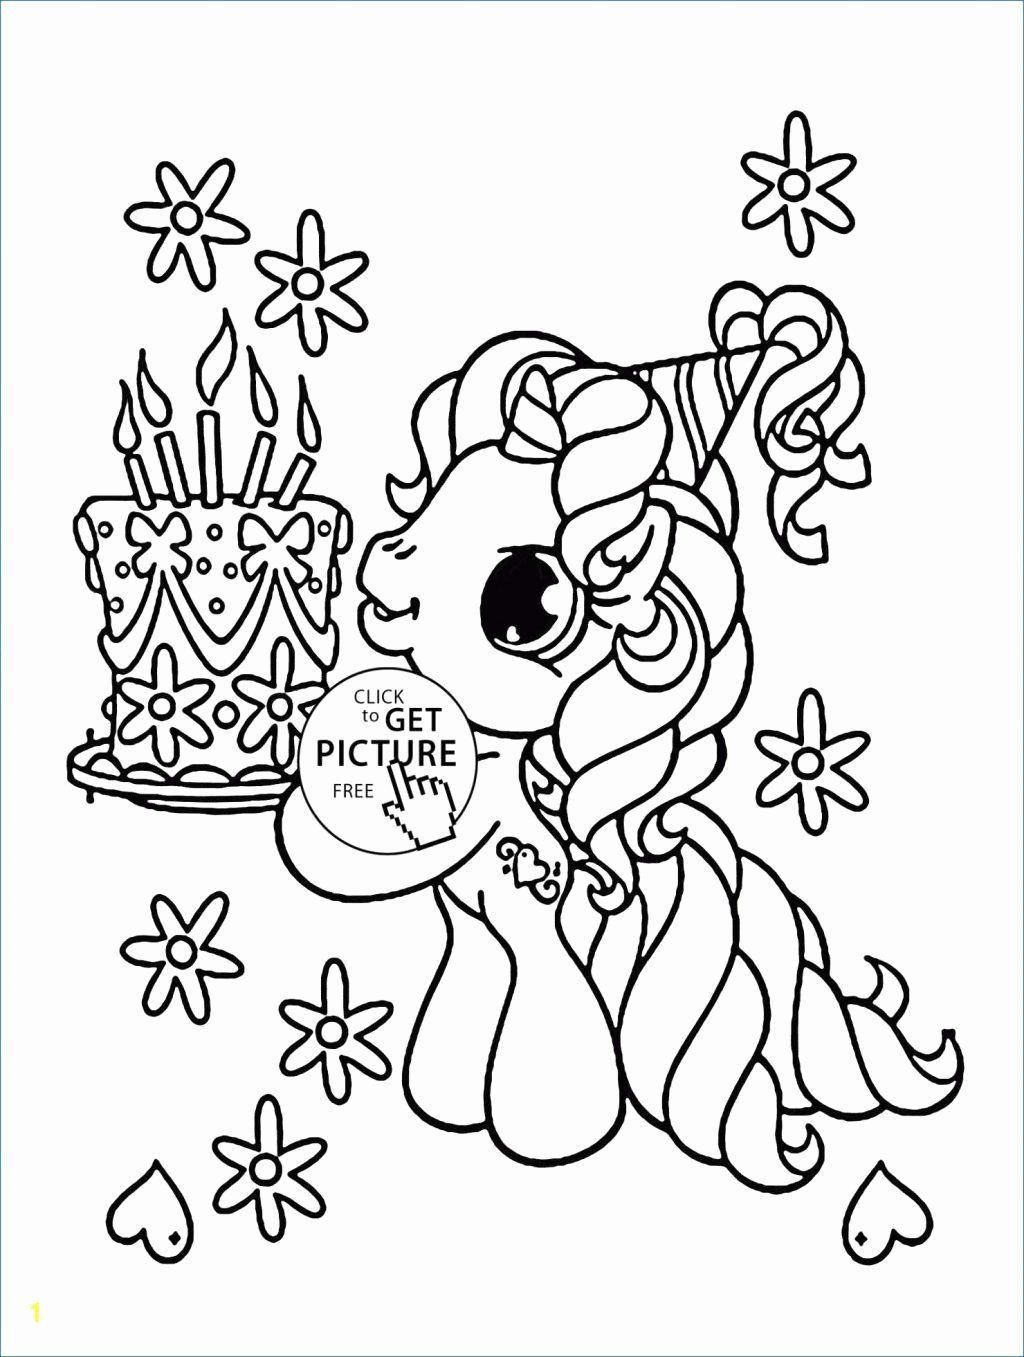 Lego Coloring Activities Inspirational Coloring Pages Coloring Book Program Script In 2020 Unicorn Coloring Pages Birthday Coloring Pages Happy Birthday Coloring Pages